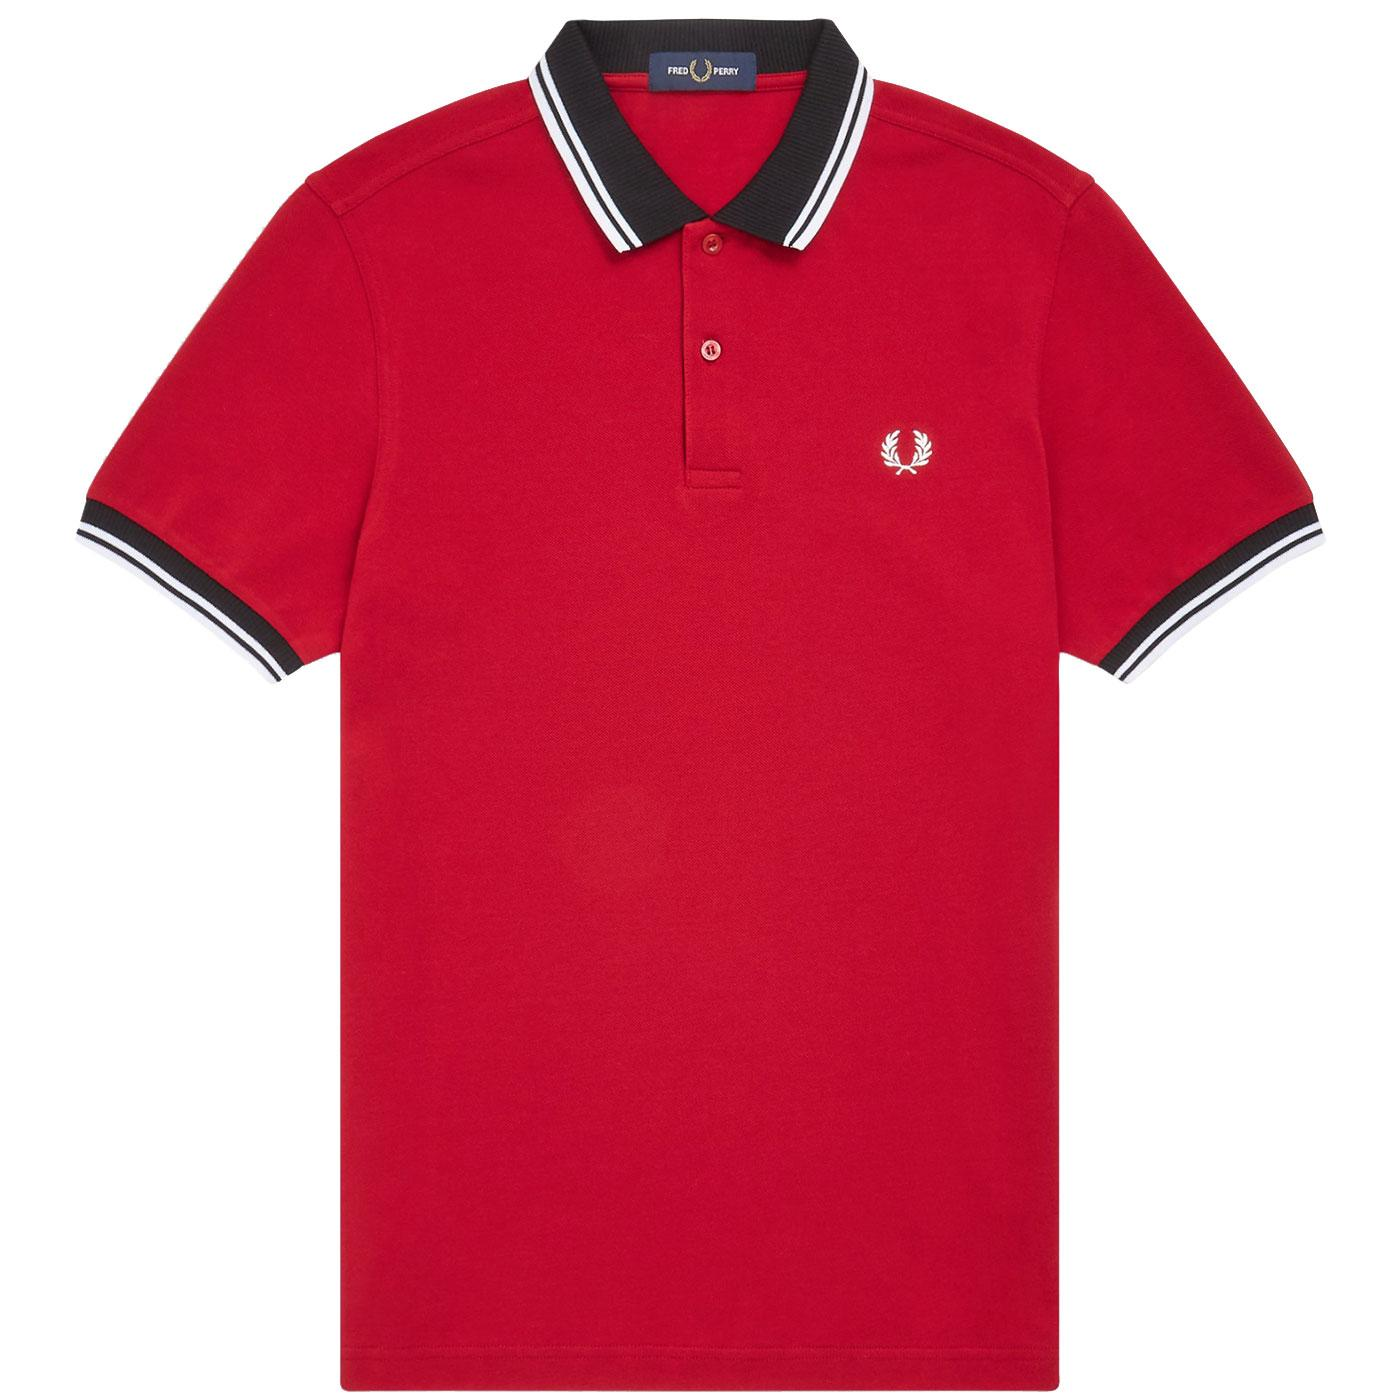 FRED PERRY Contrast Trim Tipped Mod Pique Polo S